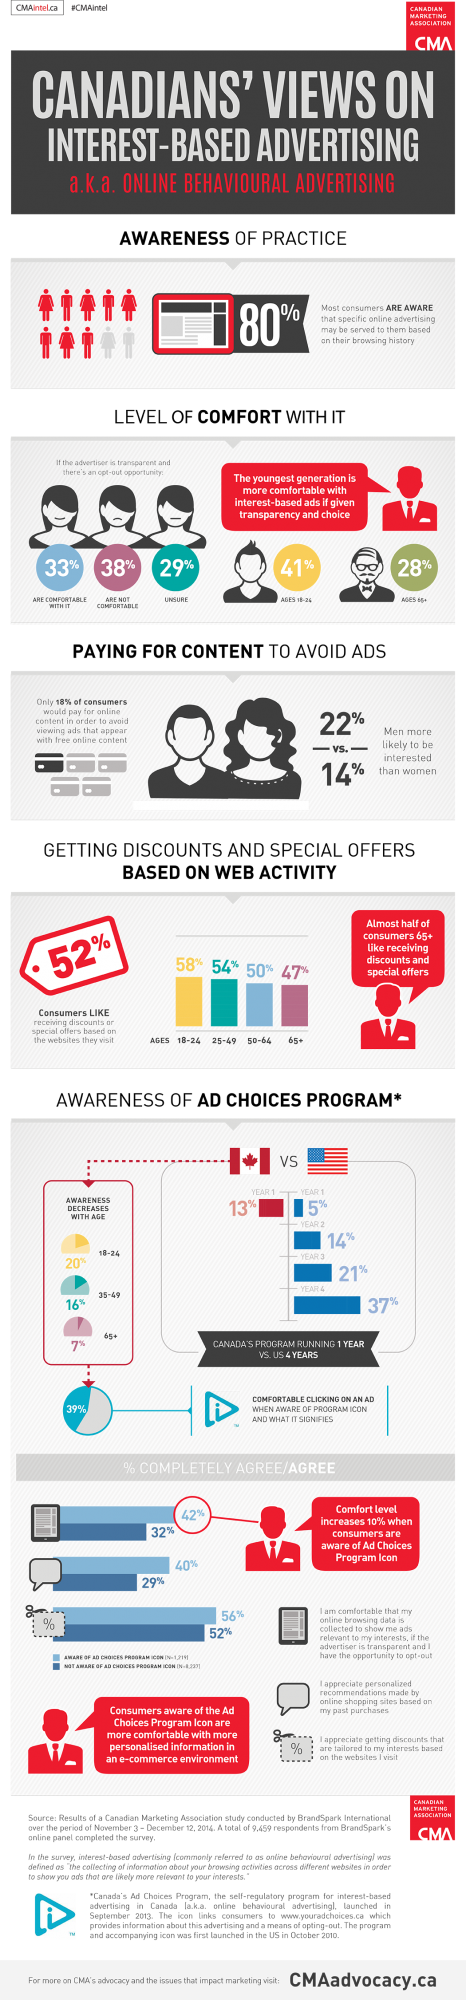 CMA - online behavioural ads infographic